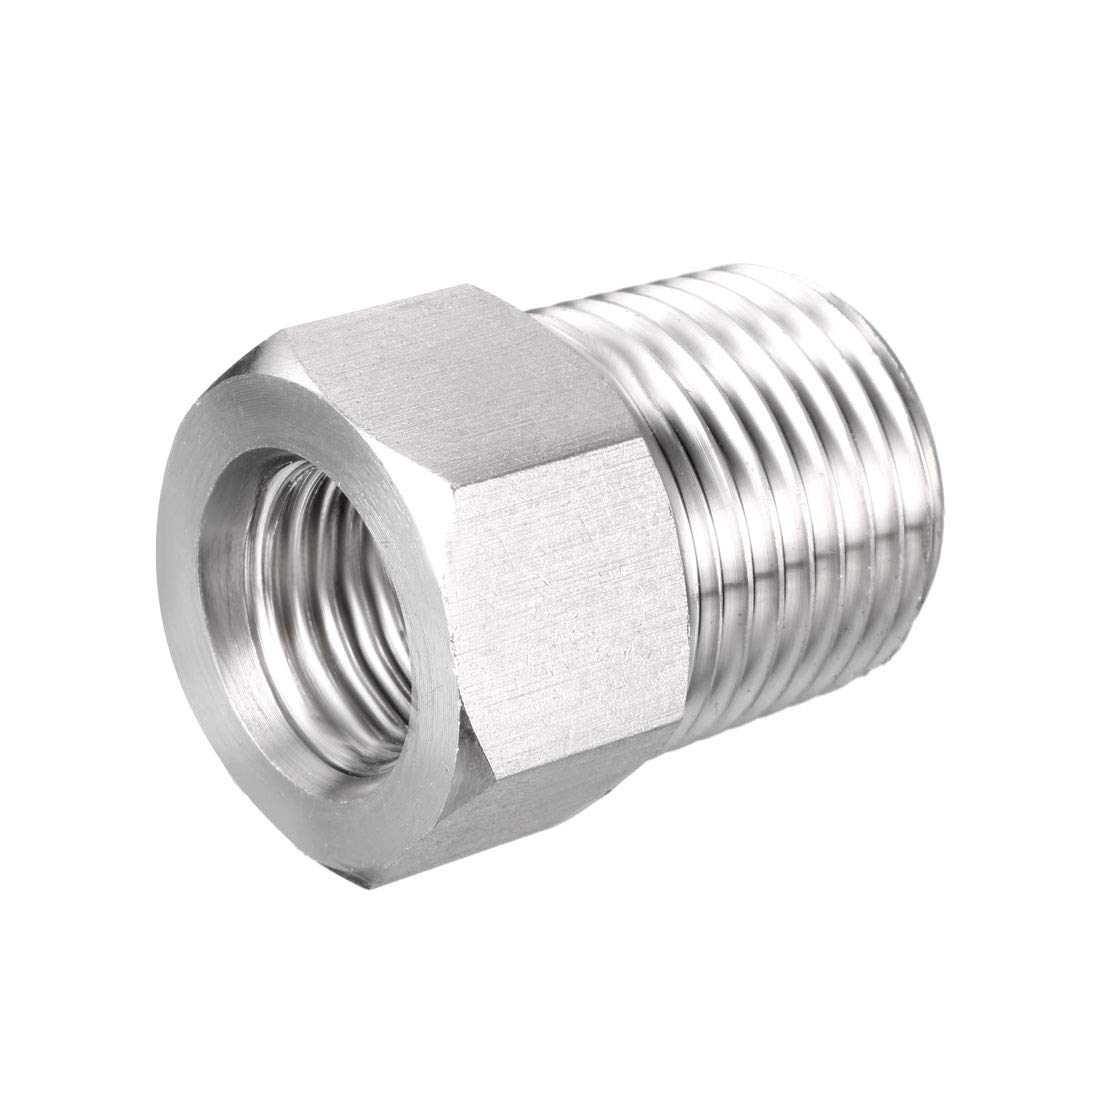 Reducer Adapter uxcell Pipe Fitting Adapter M201.5 Male Pipe x G1//4 Male Pipe